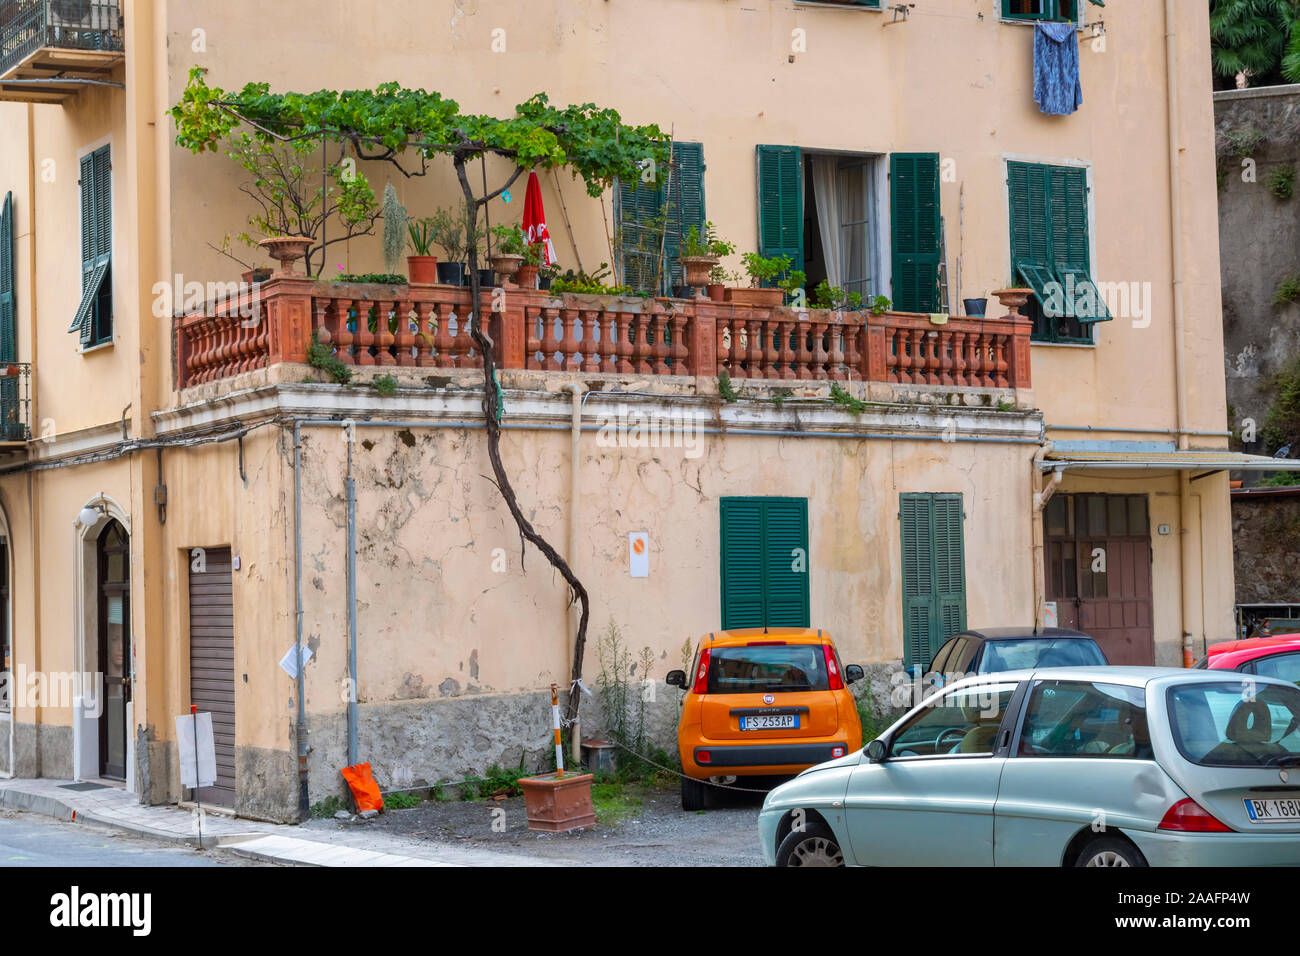 A tall thin tree grows and reaches to the first floor of an apartment in the city of Ventimiglia, Italy Stock Photo